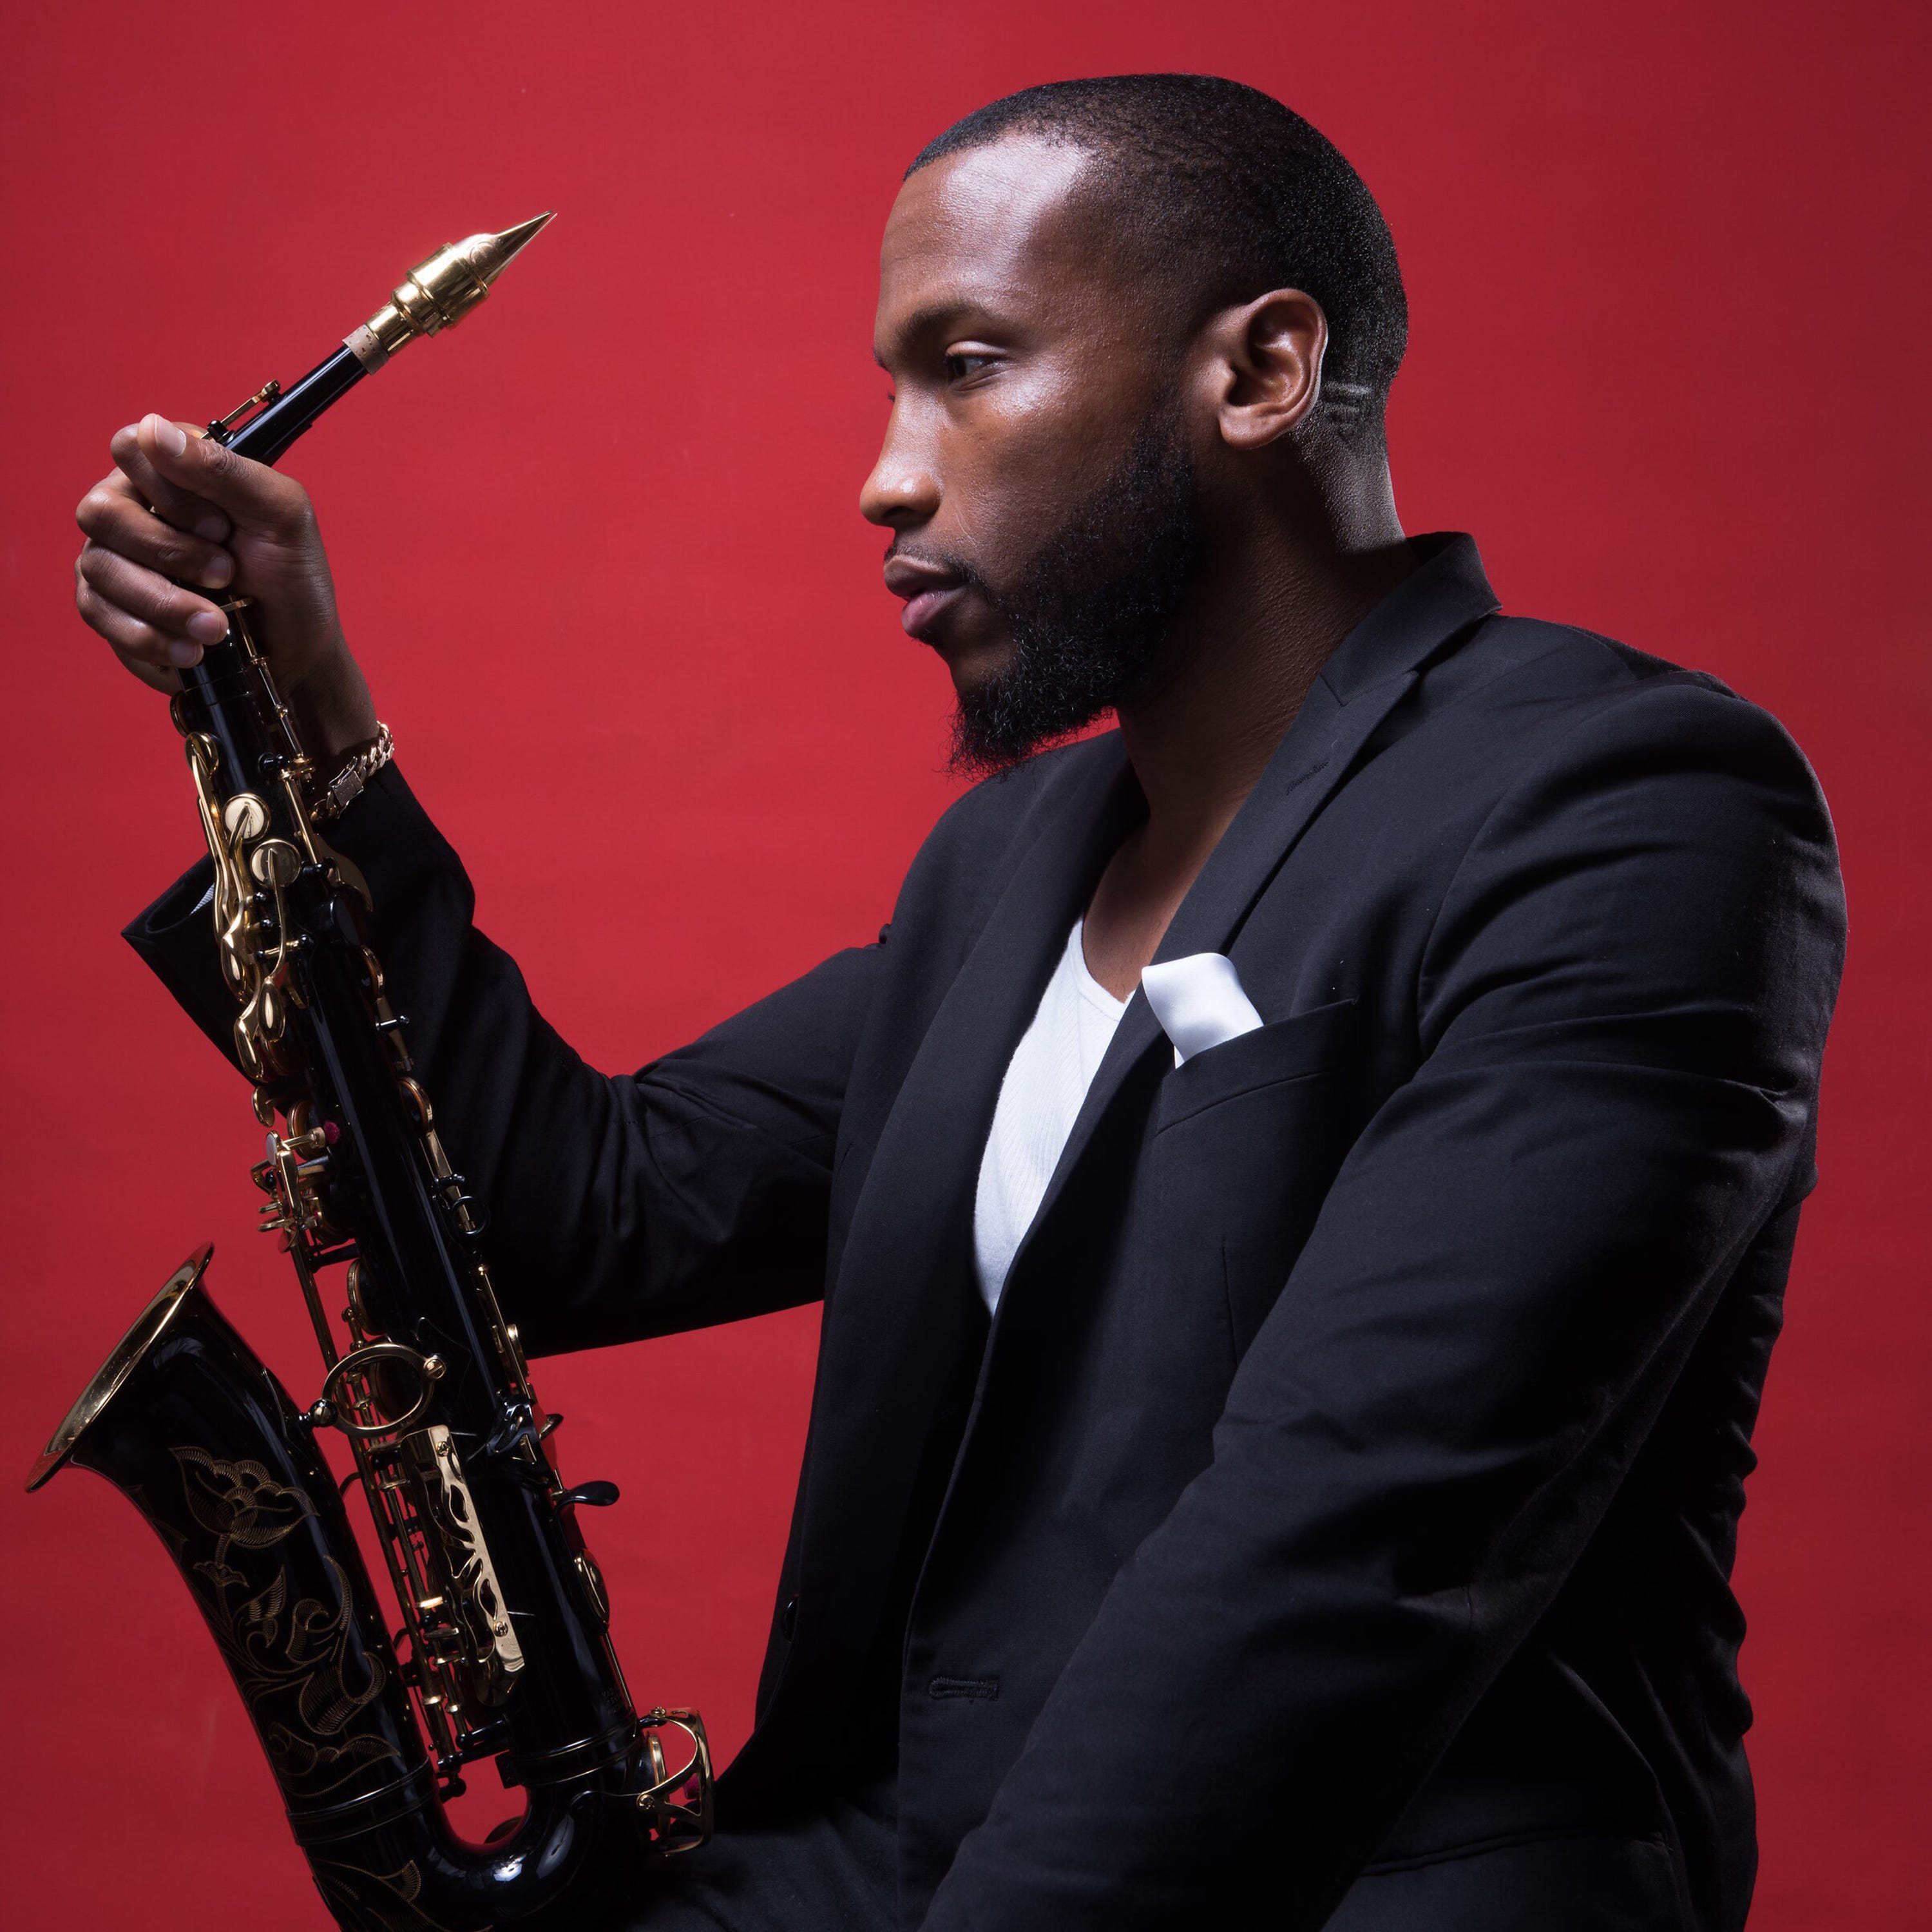 Sax to the max: Trey Daniels takes it all original with Evolve